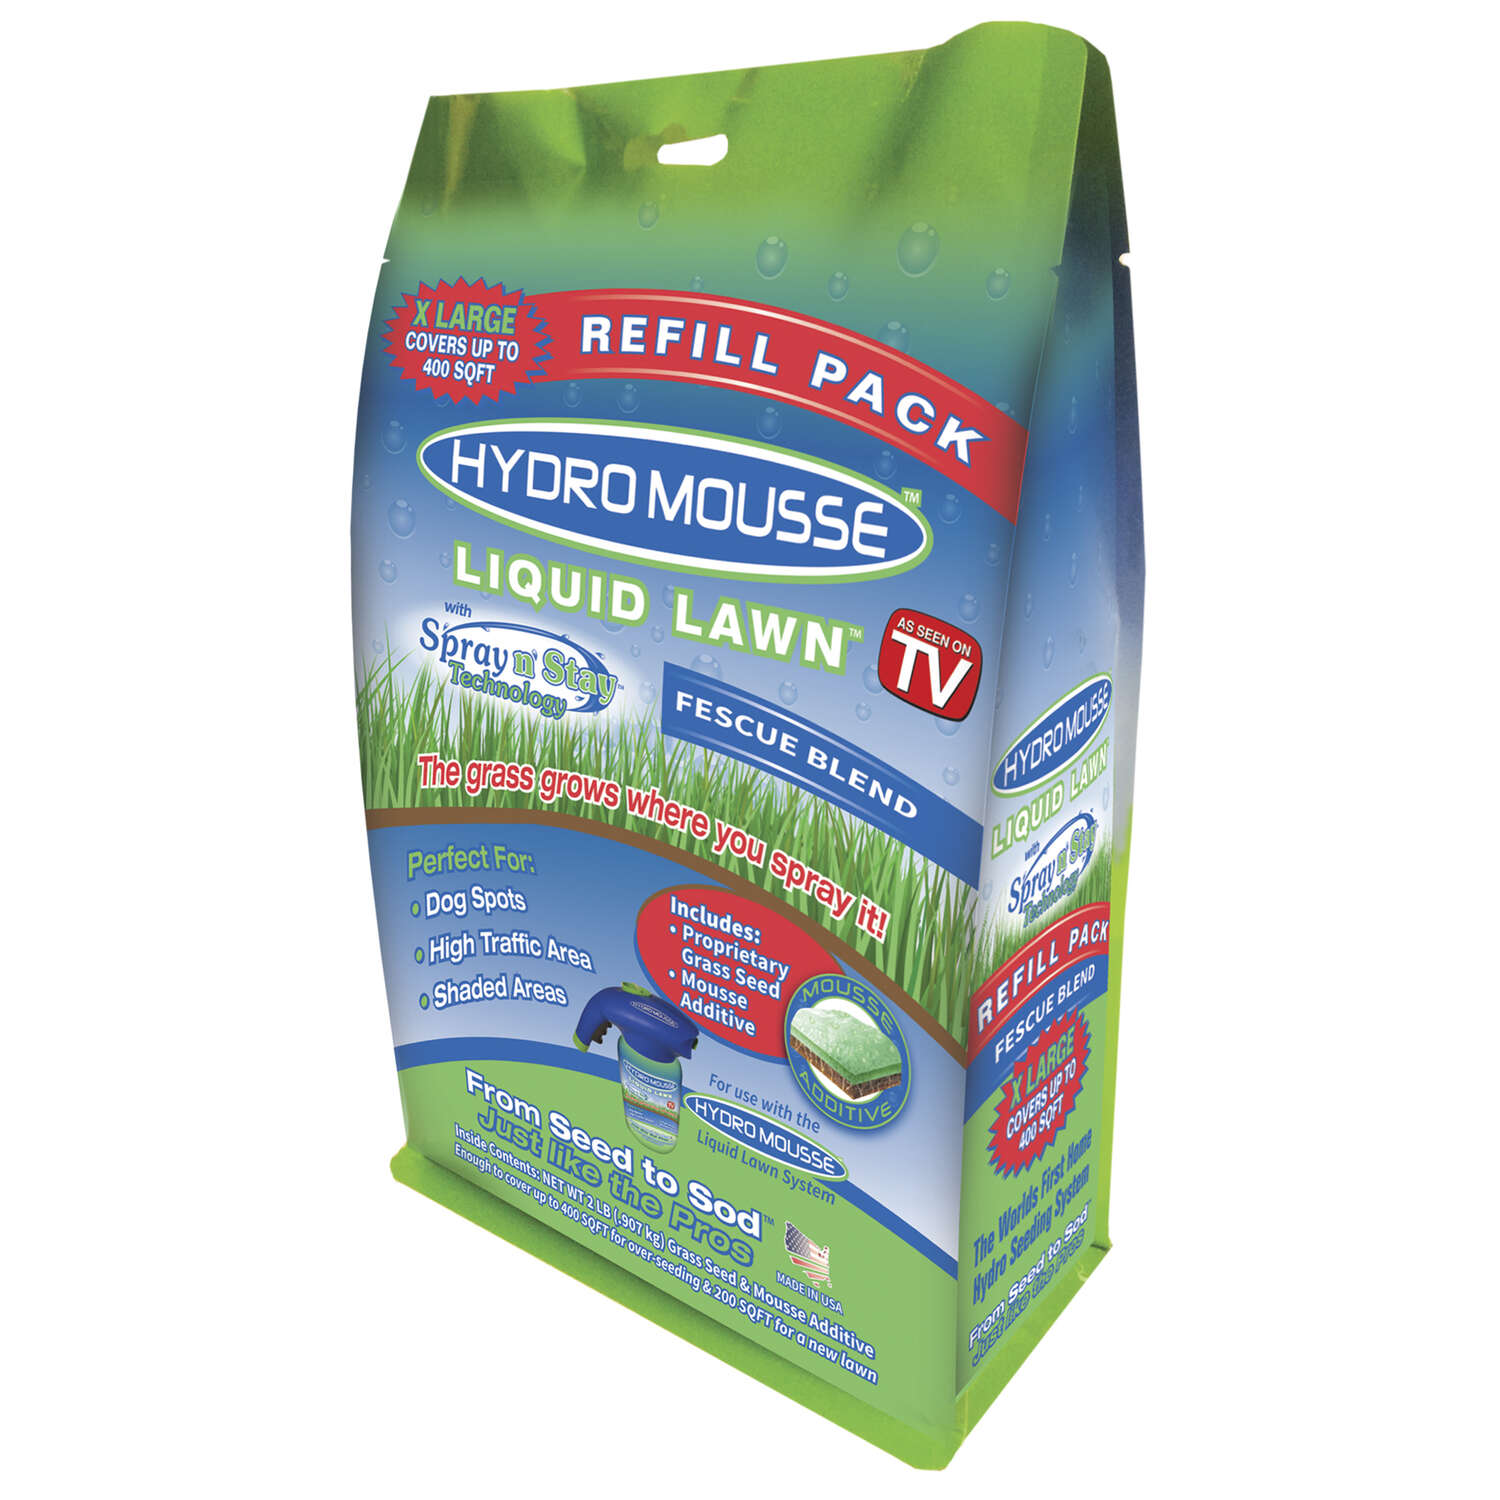 Hydro Mousse Liquid Lawn  As Seen on TV  Fescue Blend  Full Sun  Grass Seed  2 lb.